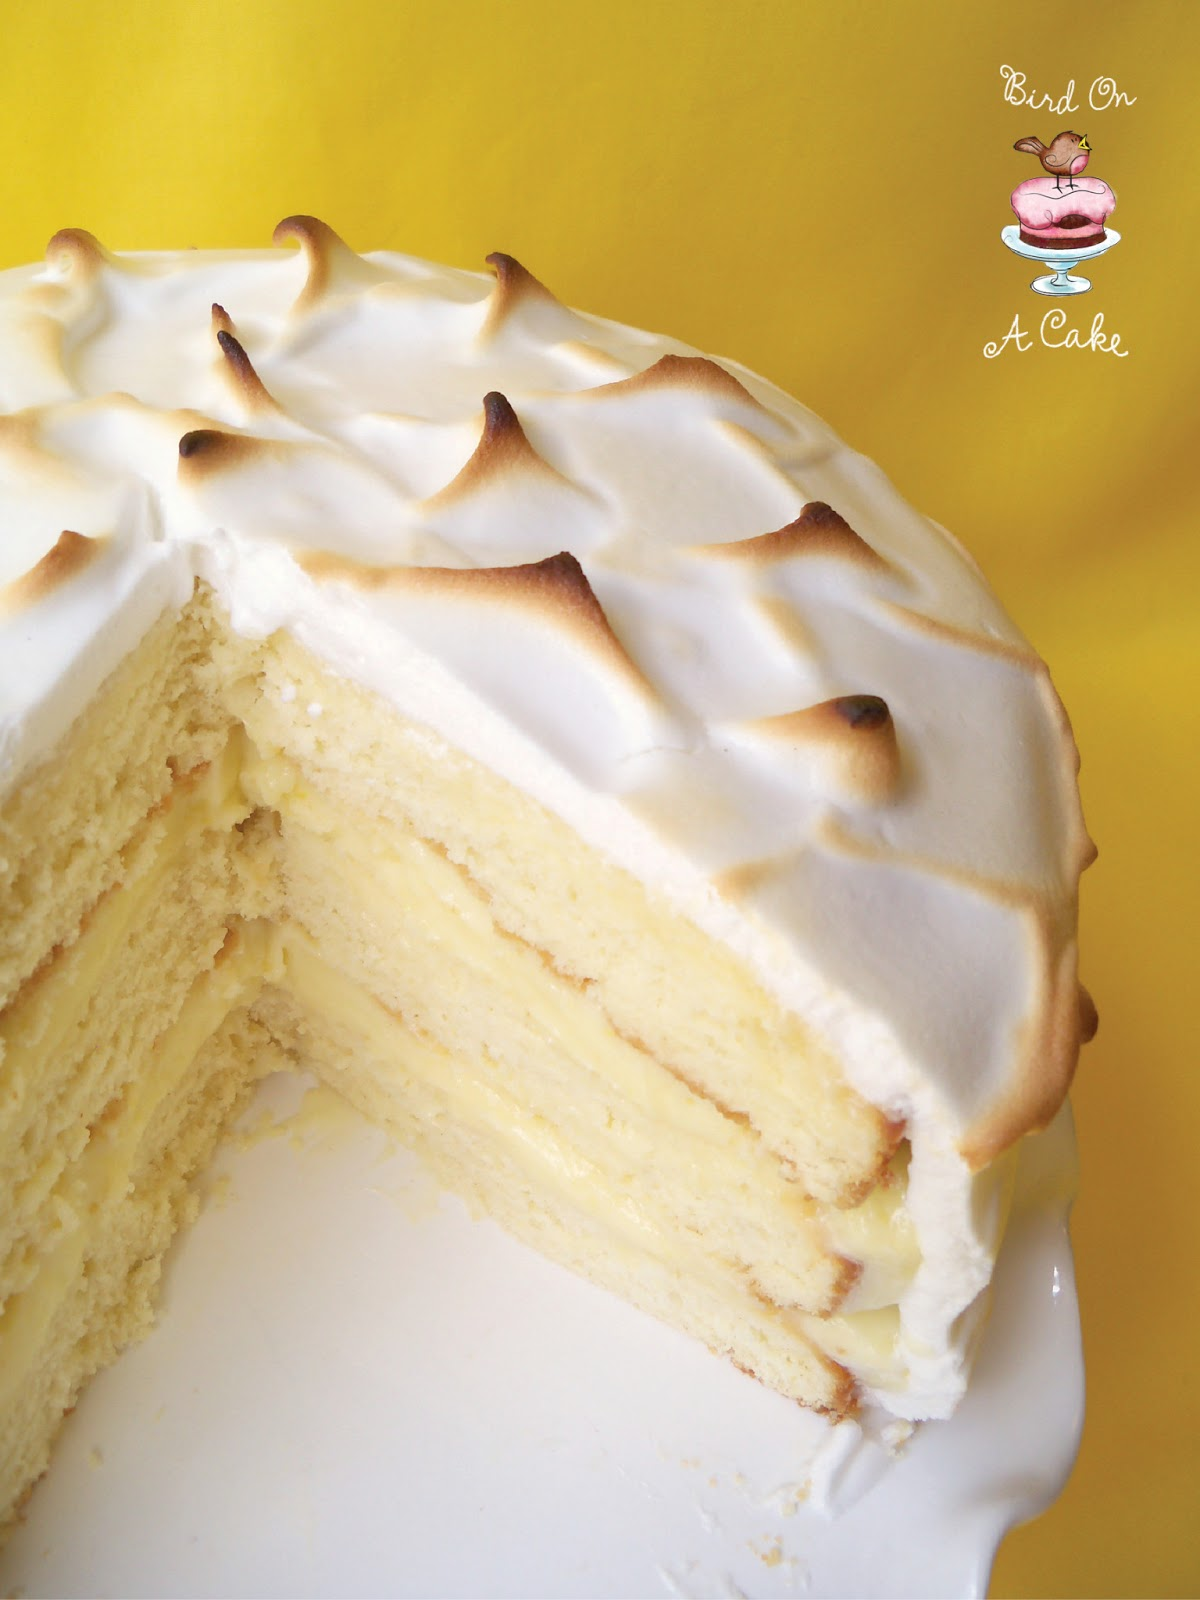 Bird On A Cake: Lemon Meringue Cake